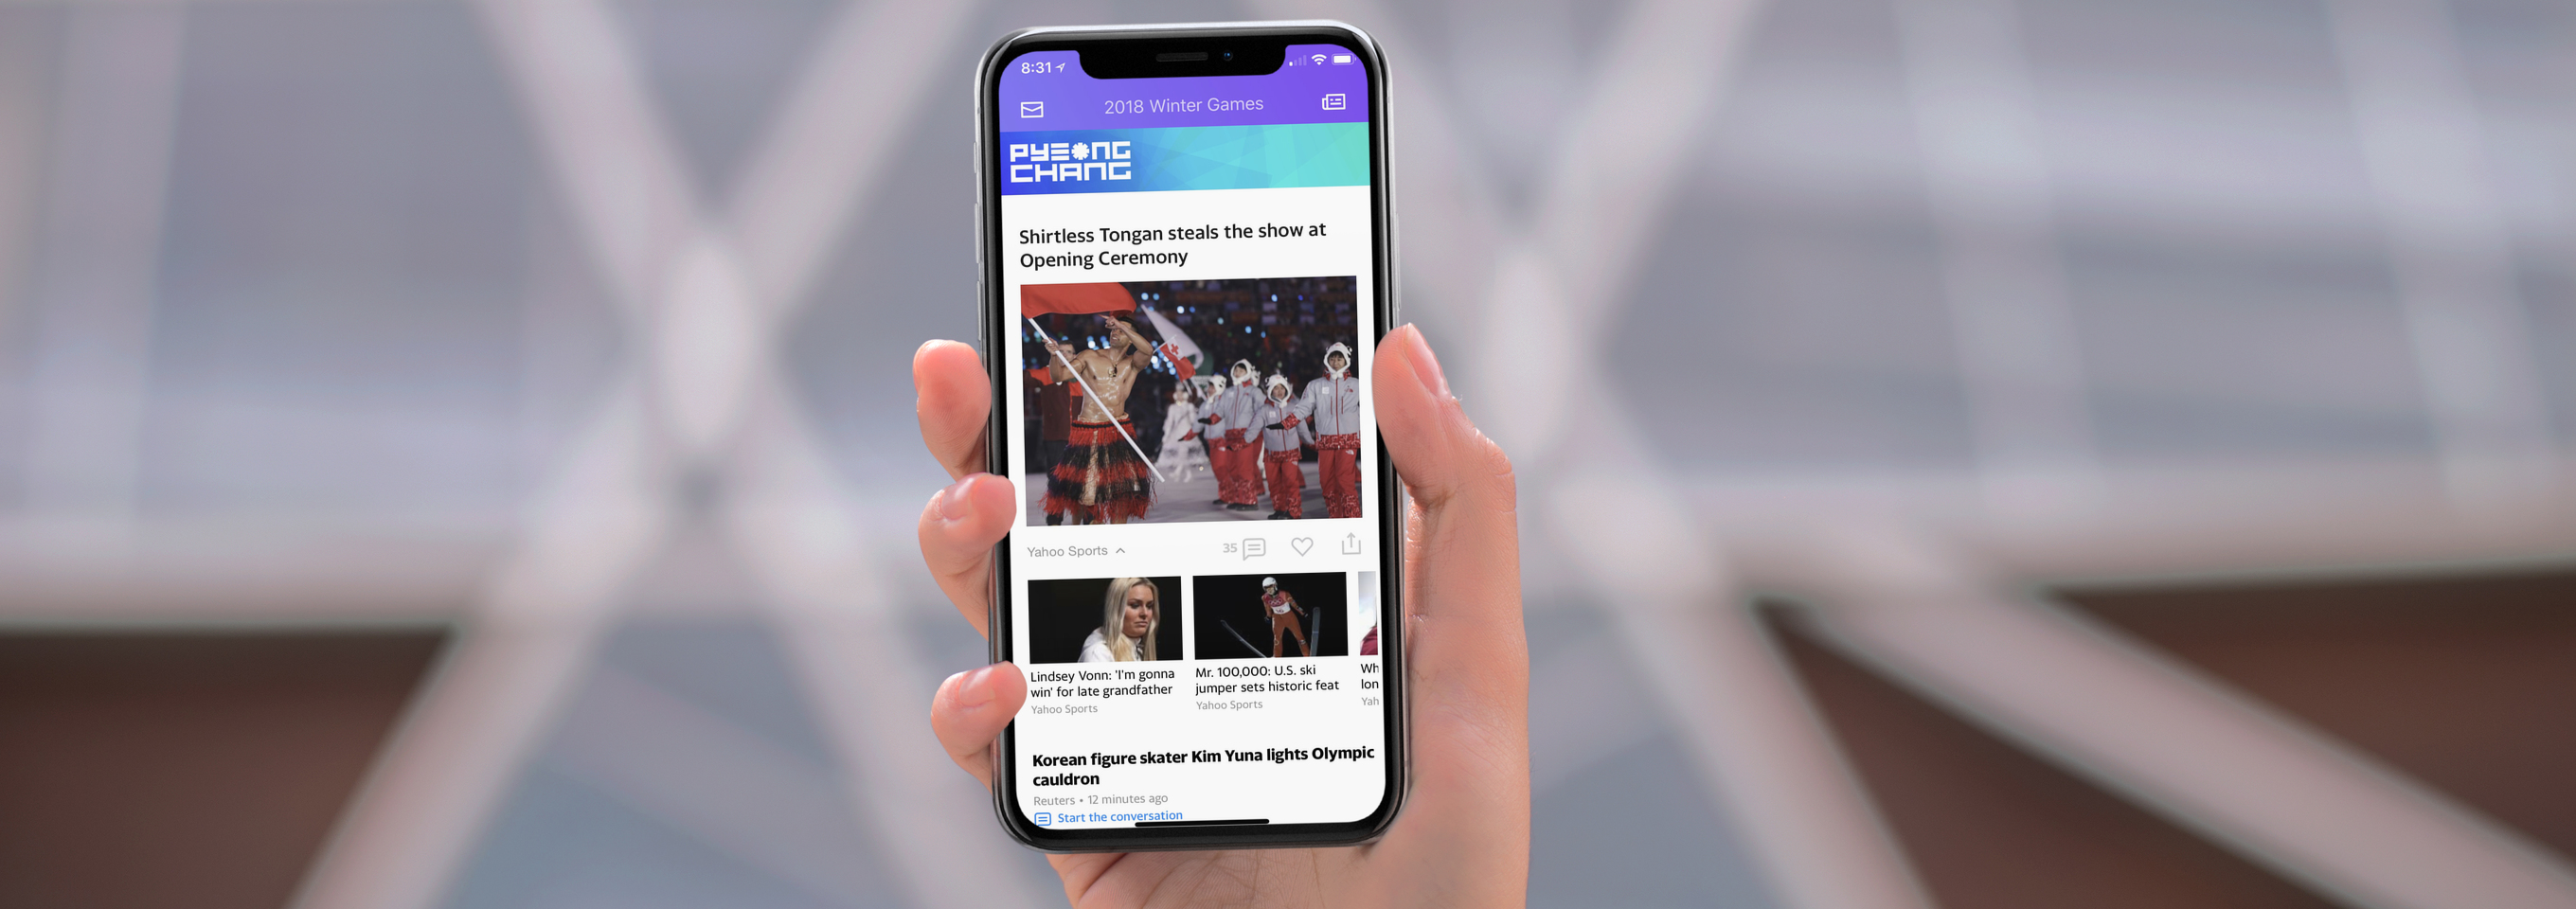 Yahoo Mail Gets Into the Winter Olympics Spirit With Great Tools for Fans